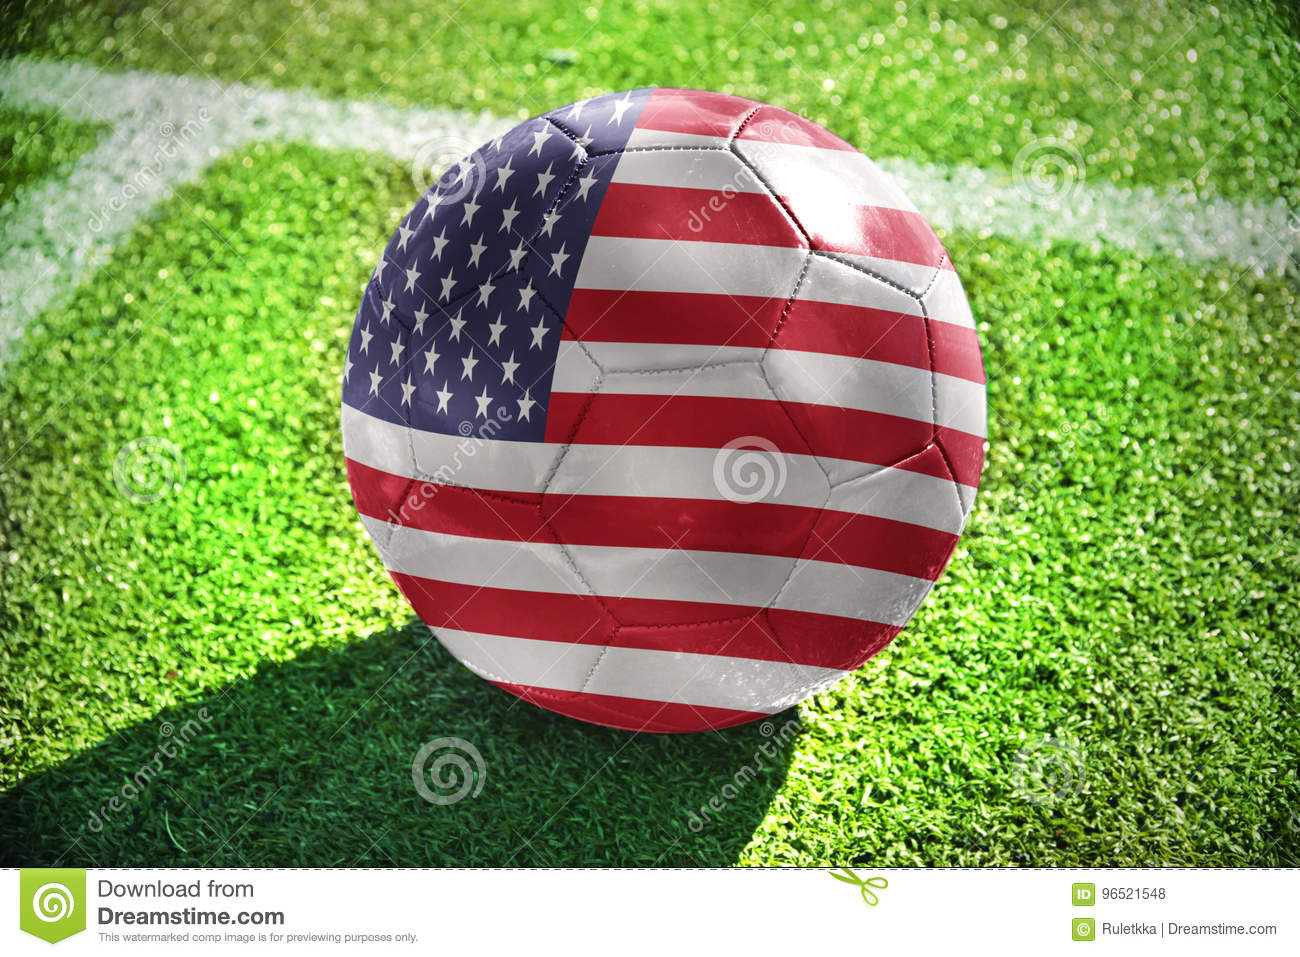 Football ball with the national flag of united states of america